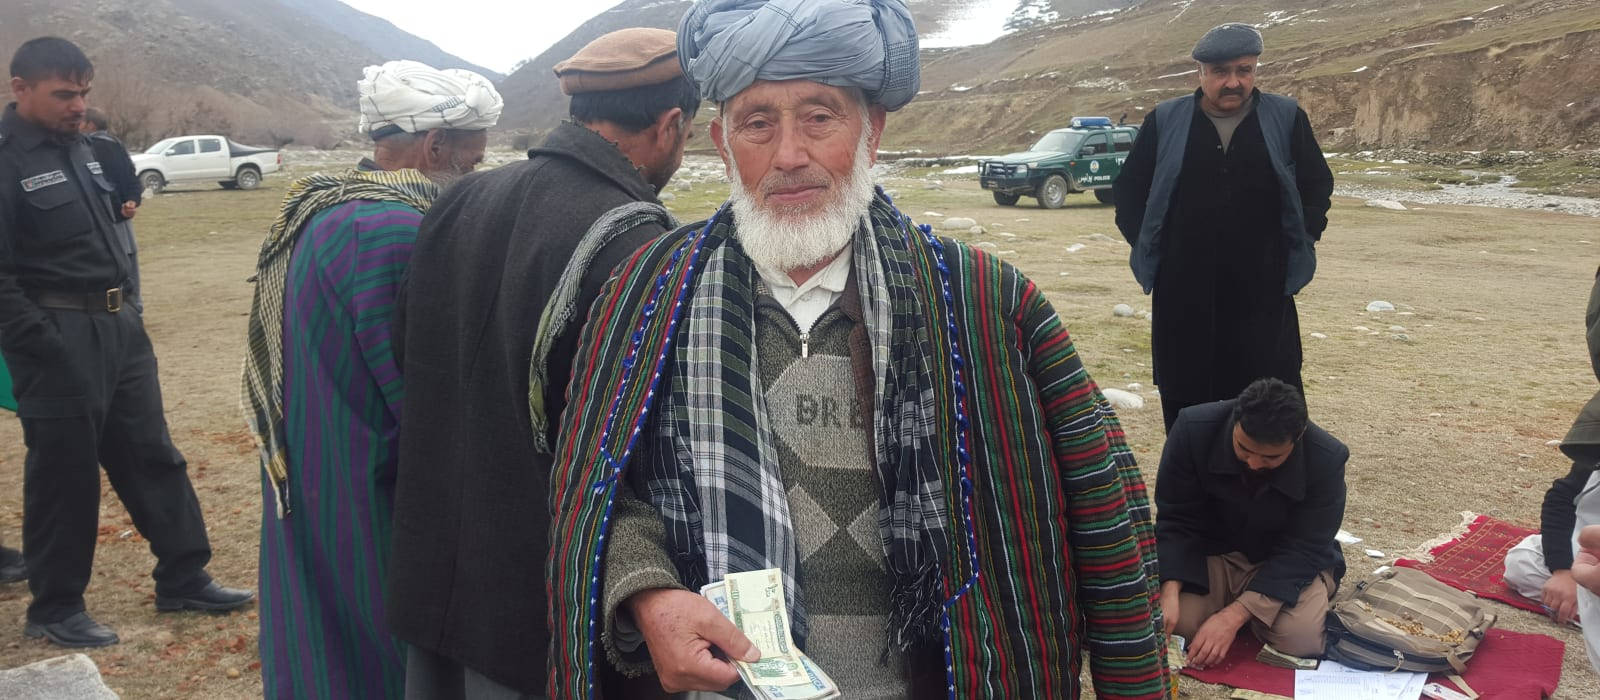 Afghanaid provided families with cash assistance following an earthquake in 2015